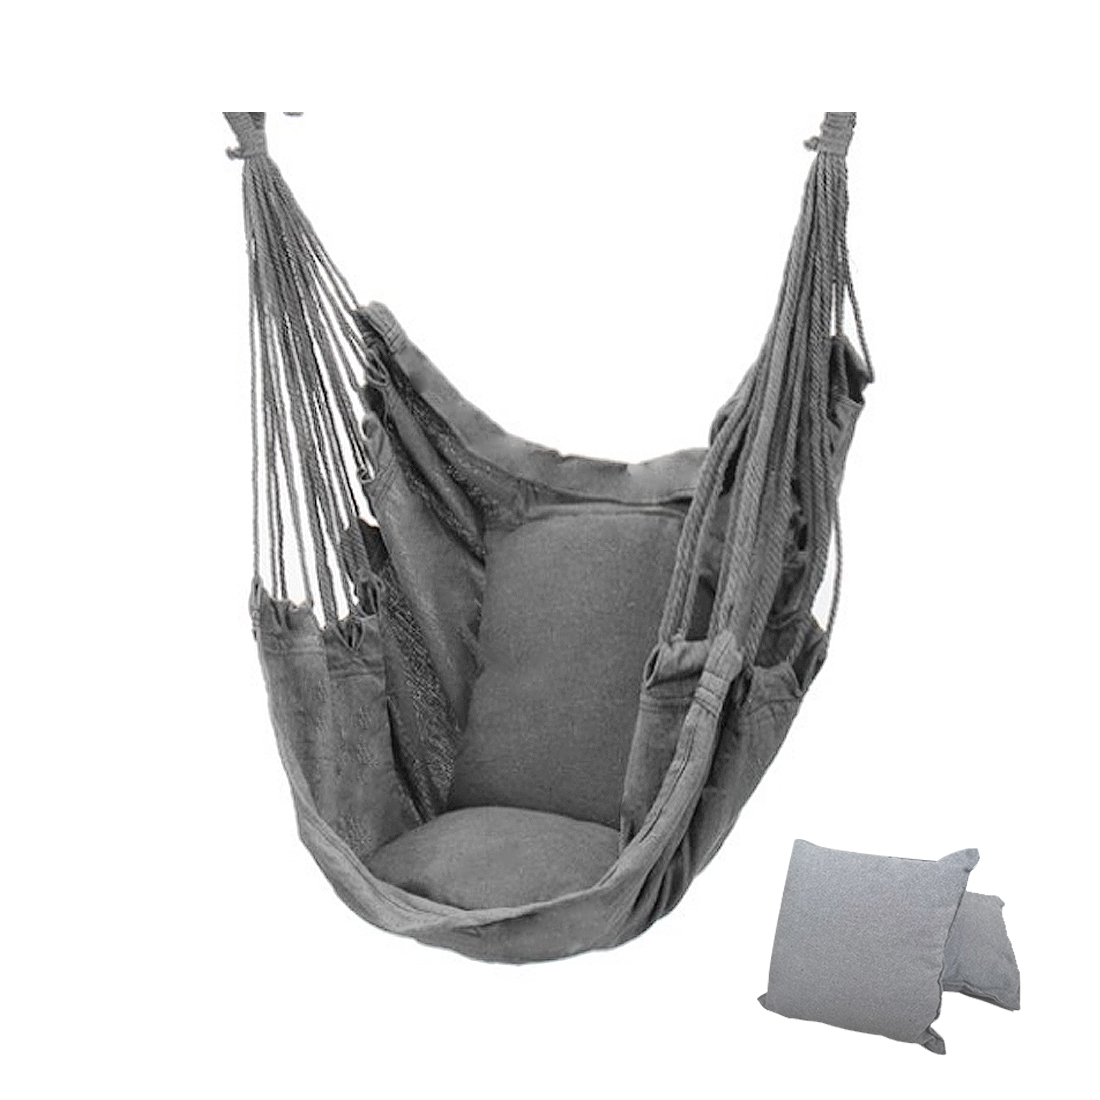 Picture of: New Thicken Hammock Chair Hanging Swing Chair Outdoor Portable Relaxation Canvas Swing Travel Camping Lazy Chair With No Pillow Leather Bag